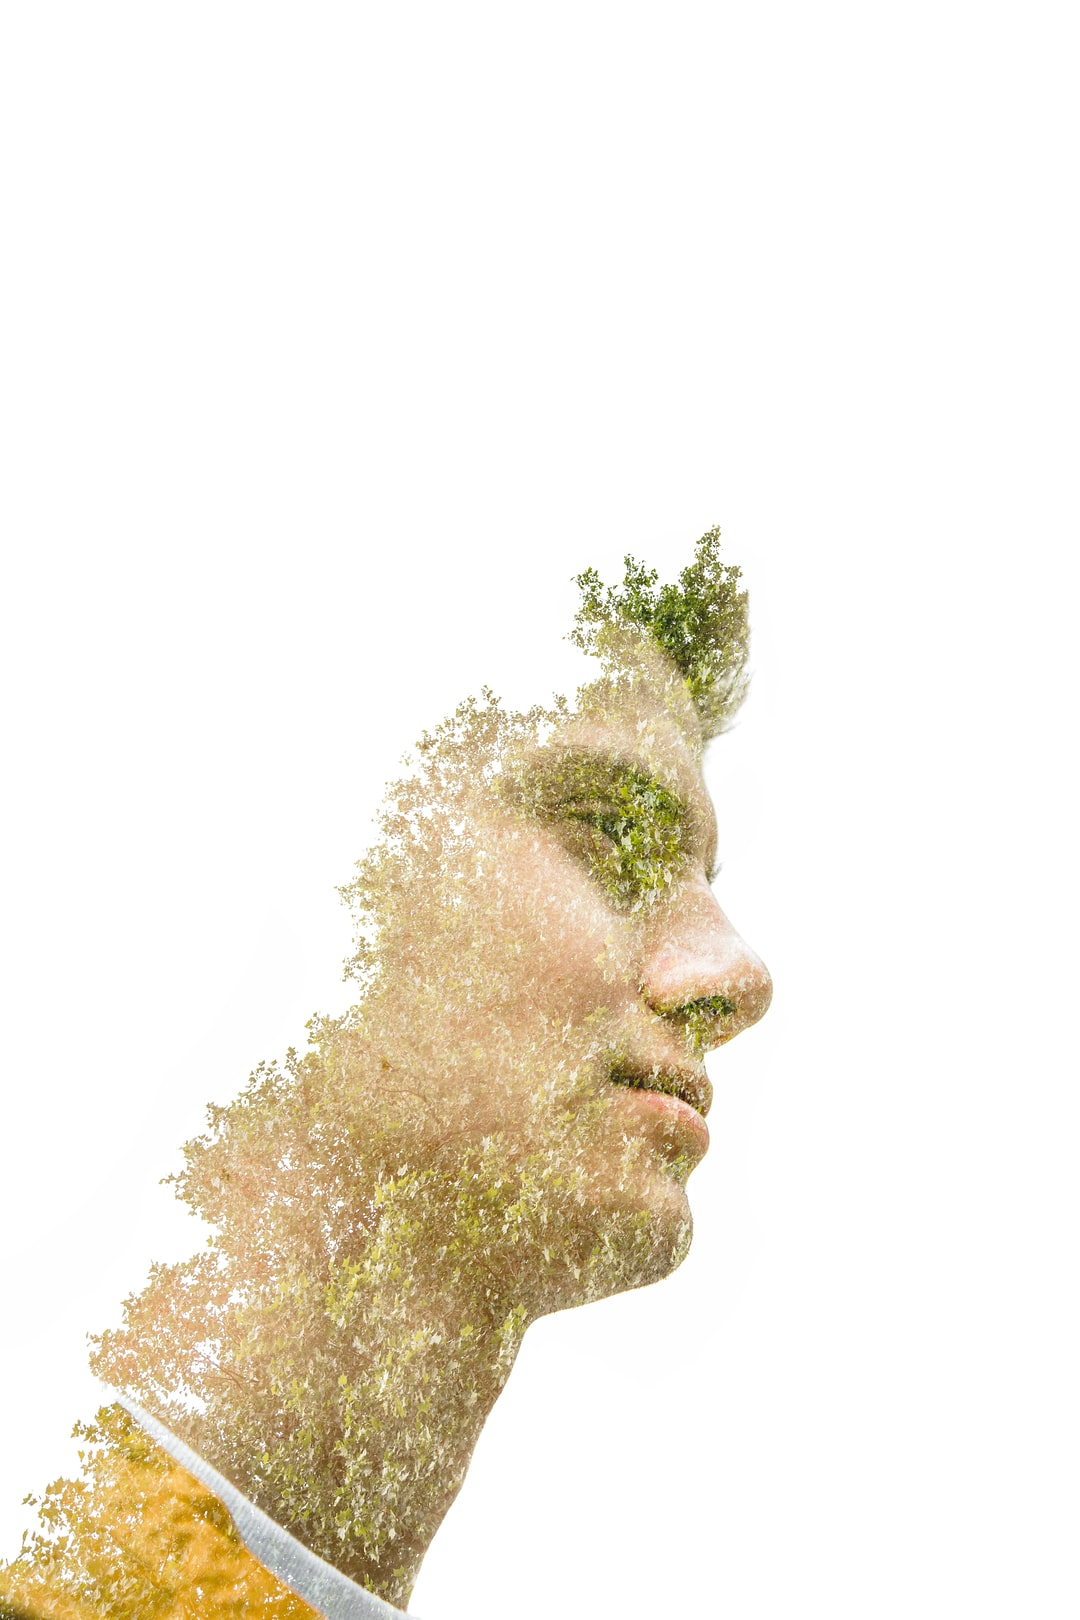 first go at a double exposure